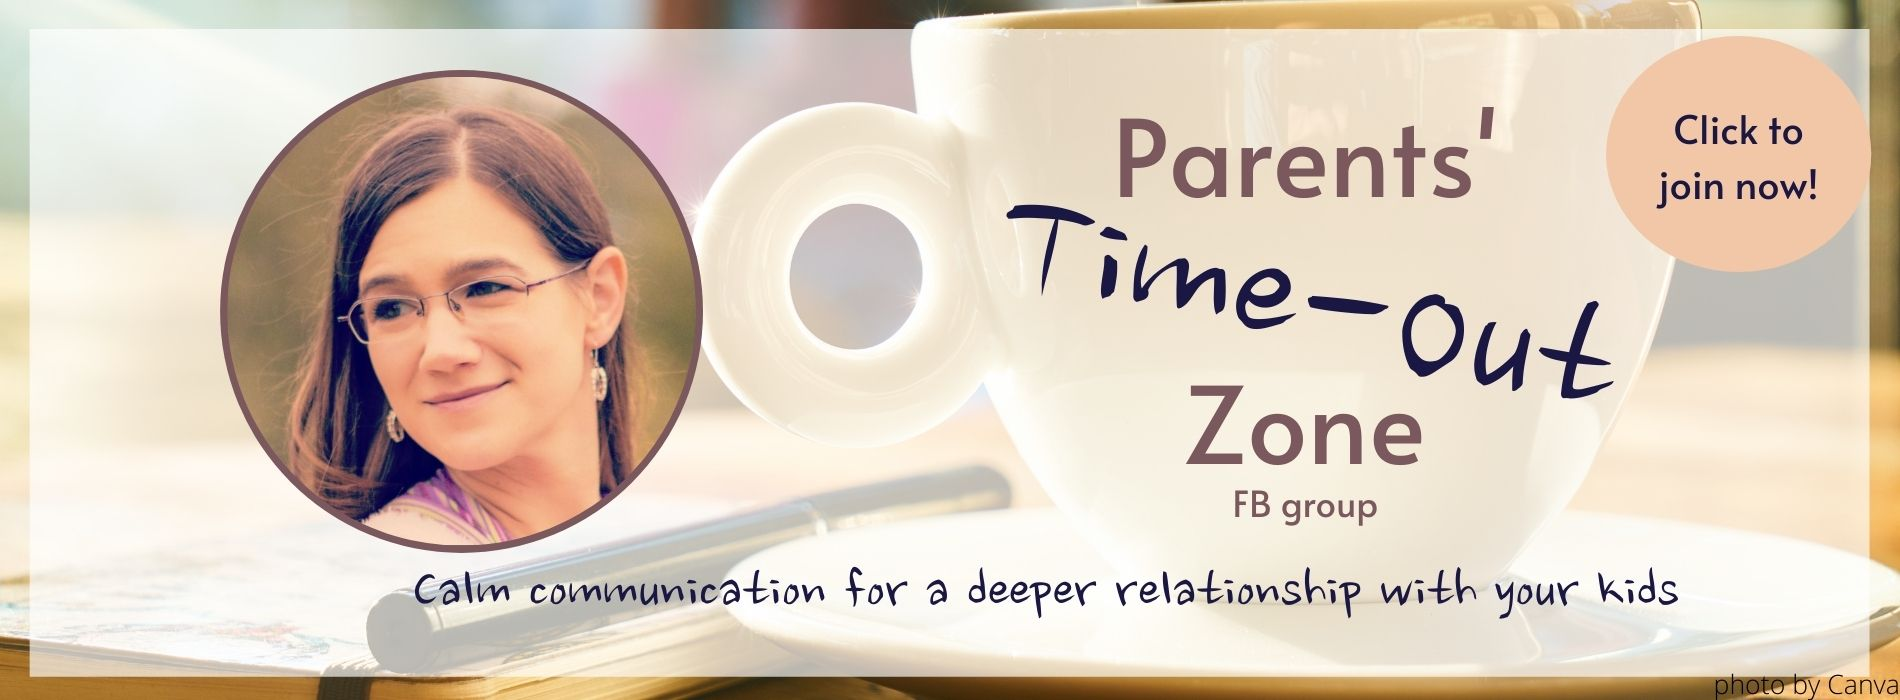 a group for parents for calm communication, anger management, deeper relationship with kids; parents' time-out zone